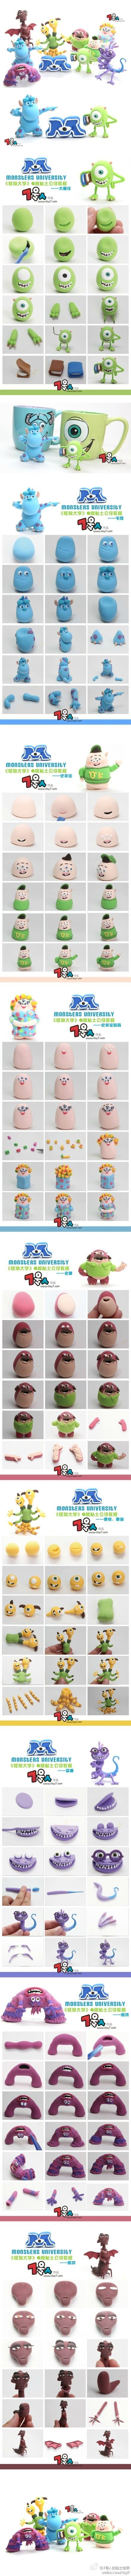 Monsters university clay